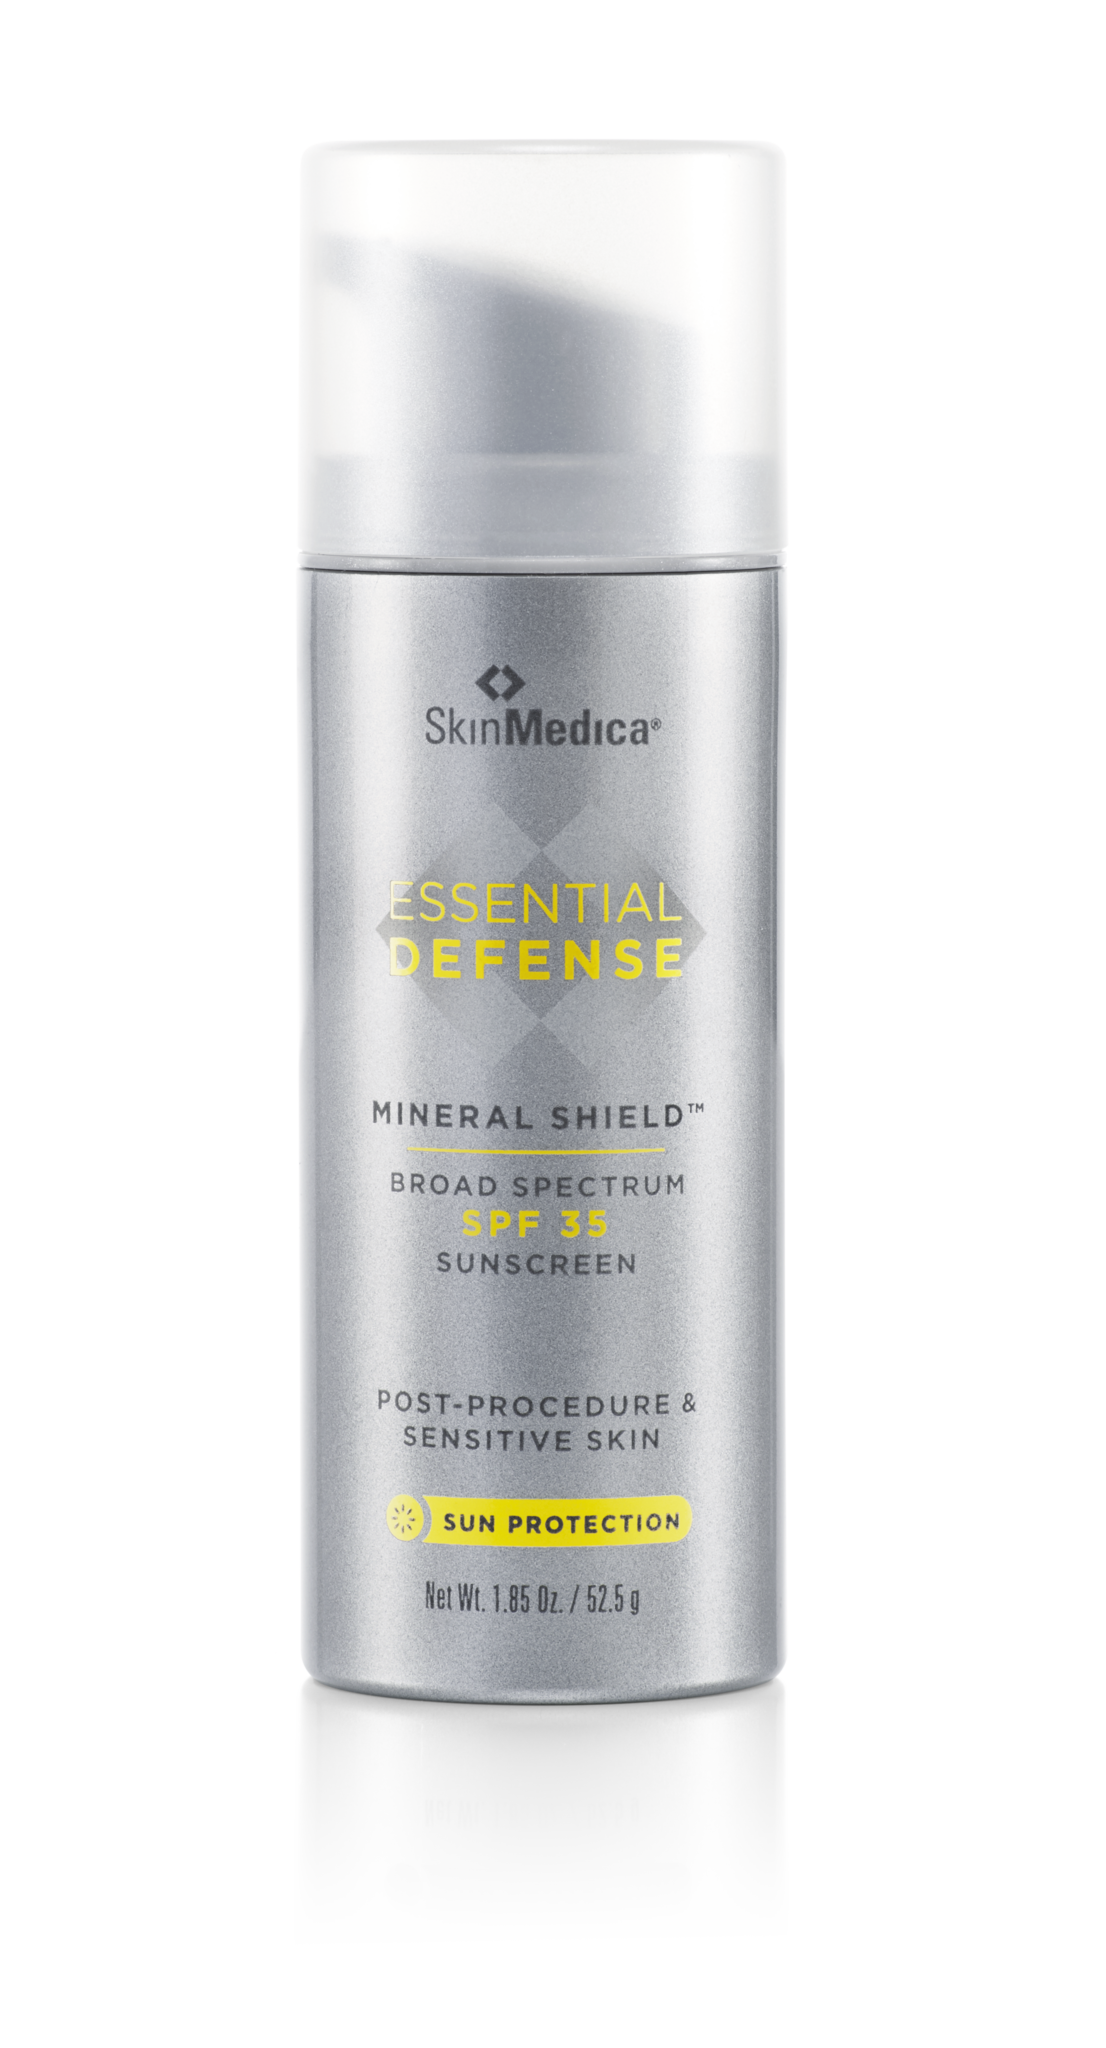 SkinMedica® Essential Defense Mineral Shield Broad Spectrum SPF 35 (1.85 oz)